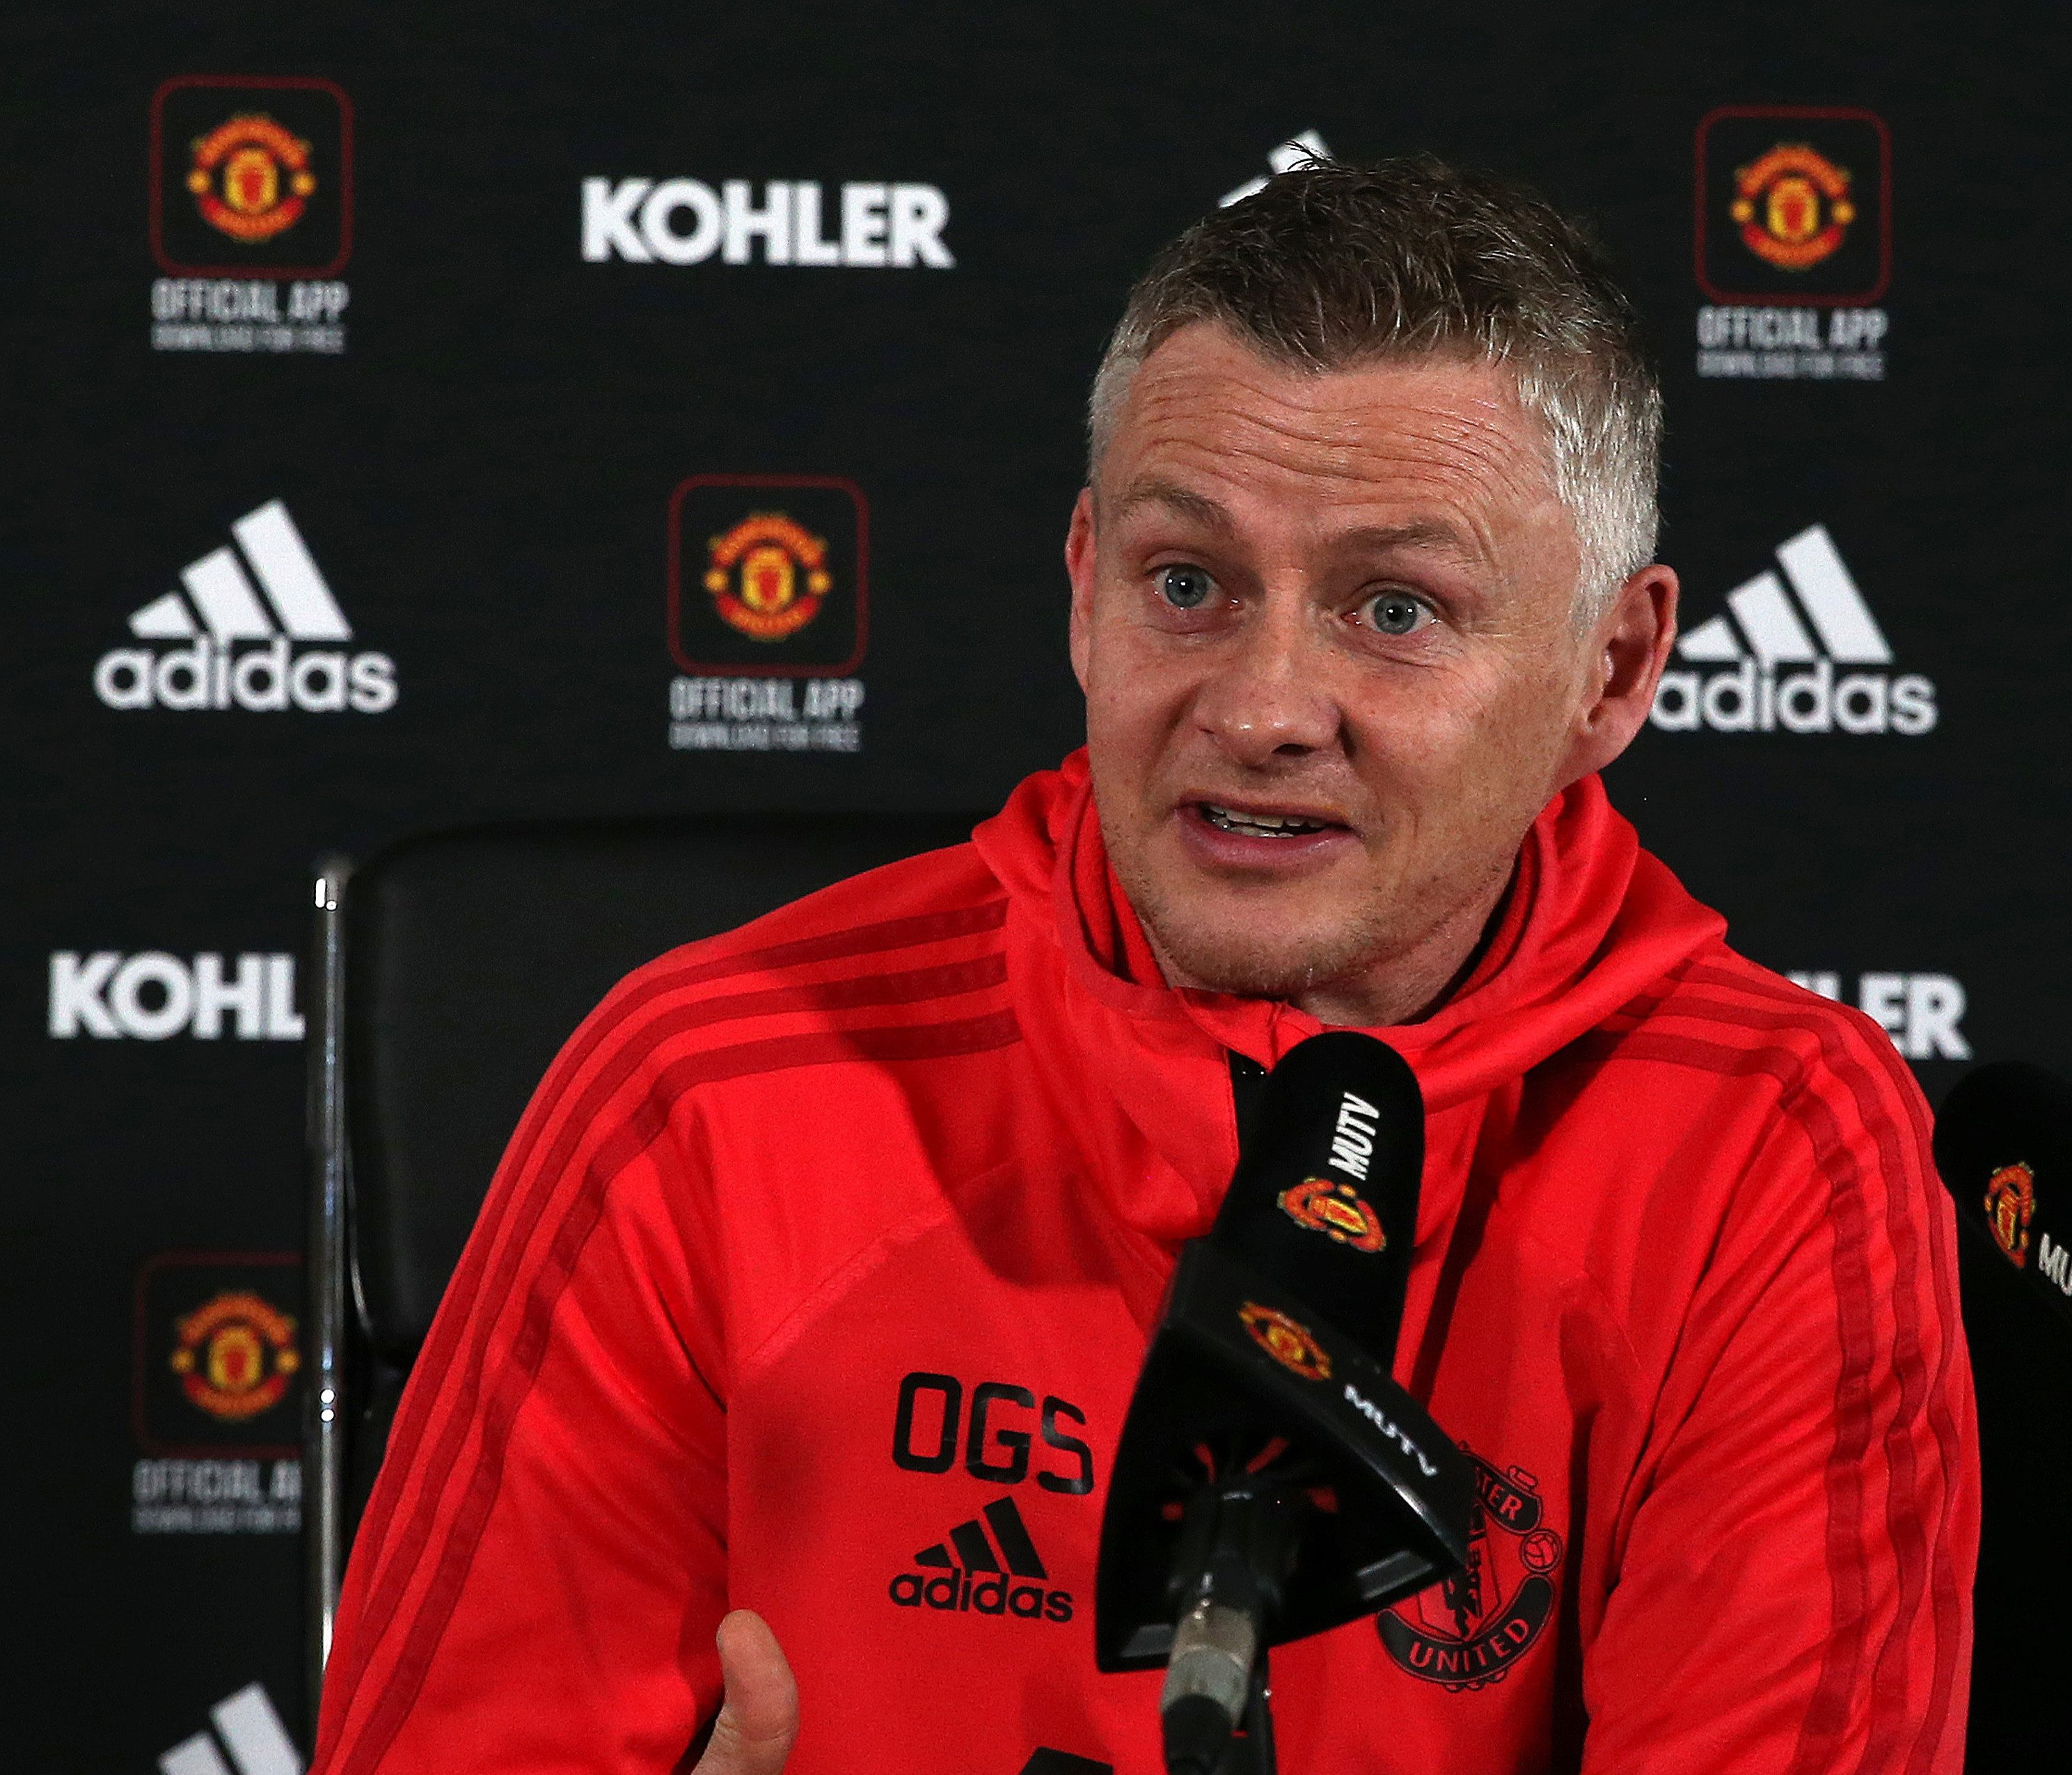 Ole Gunnar Solskjaer's side are fourth in the Premier League table